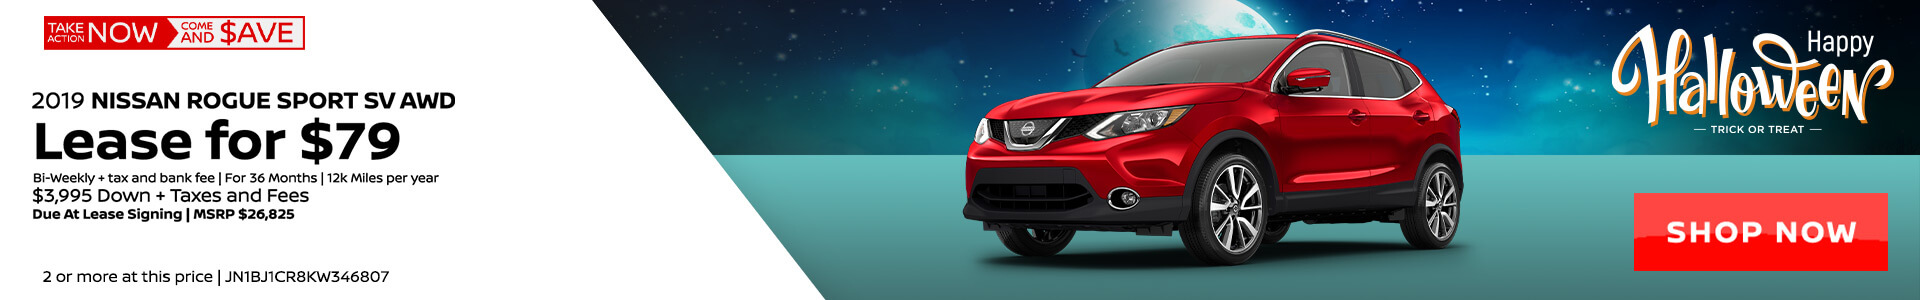 Nissan Rogue Sport $79 Lease